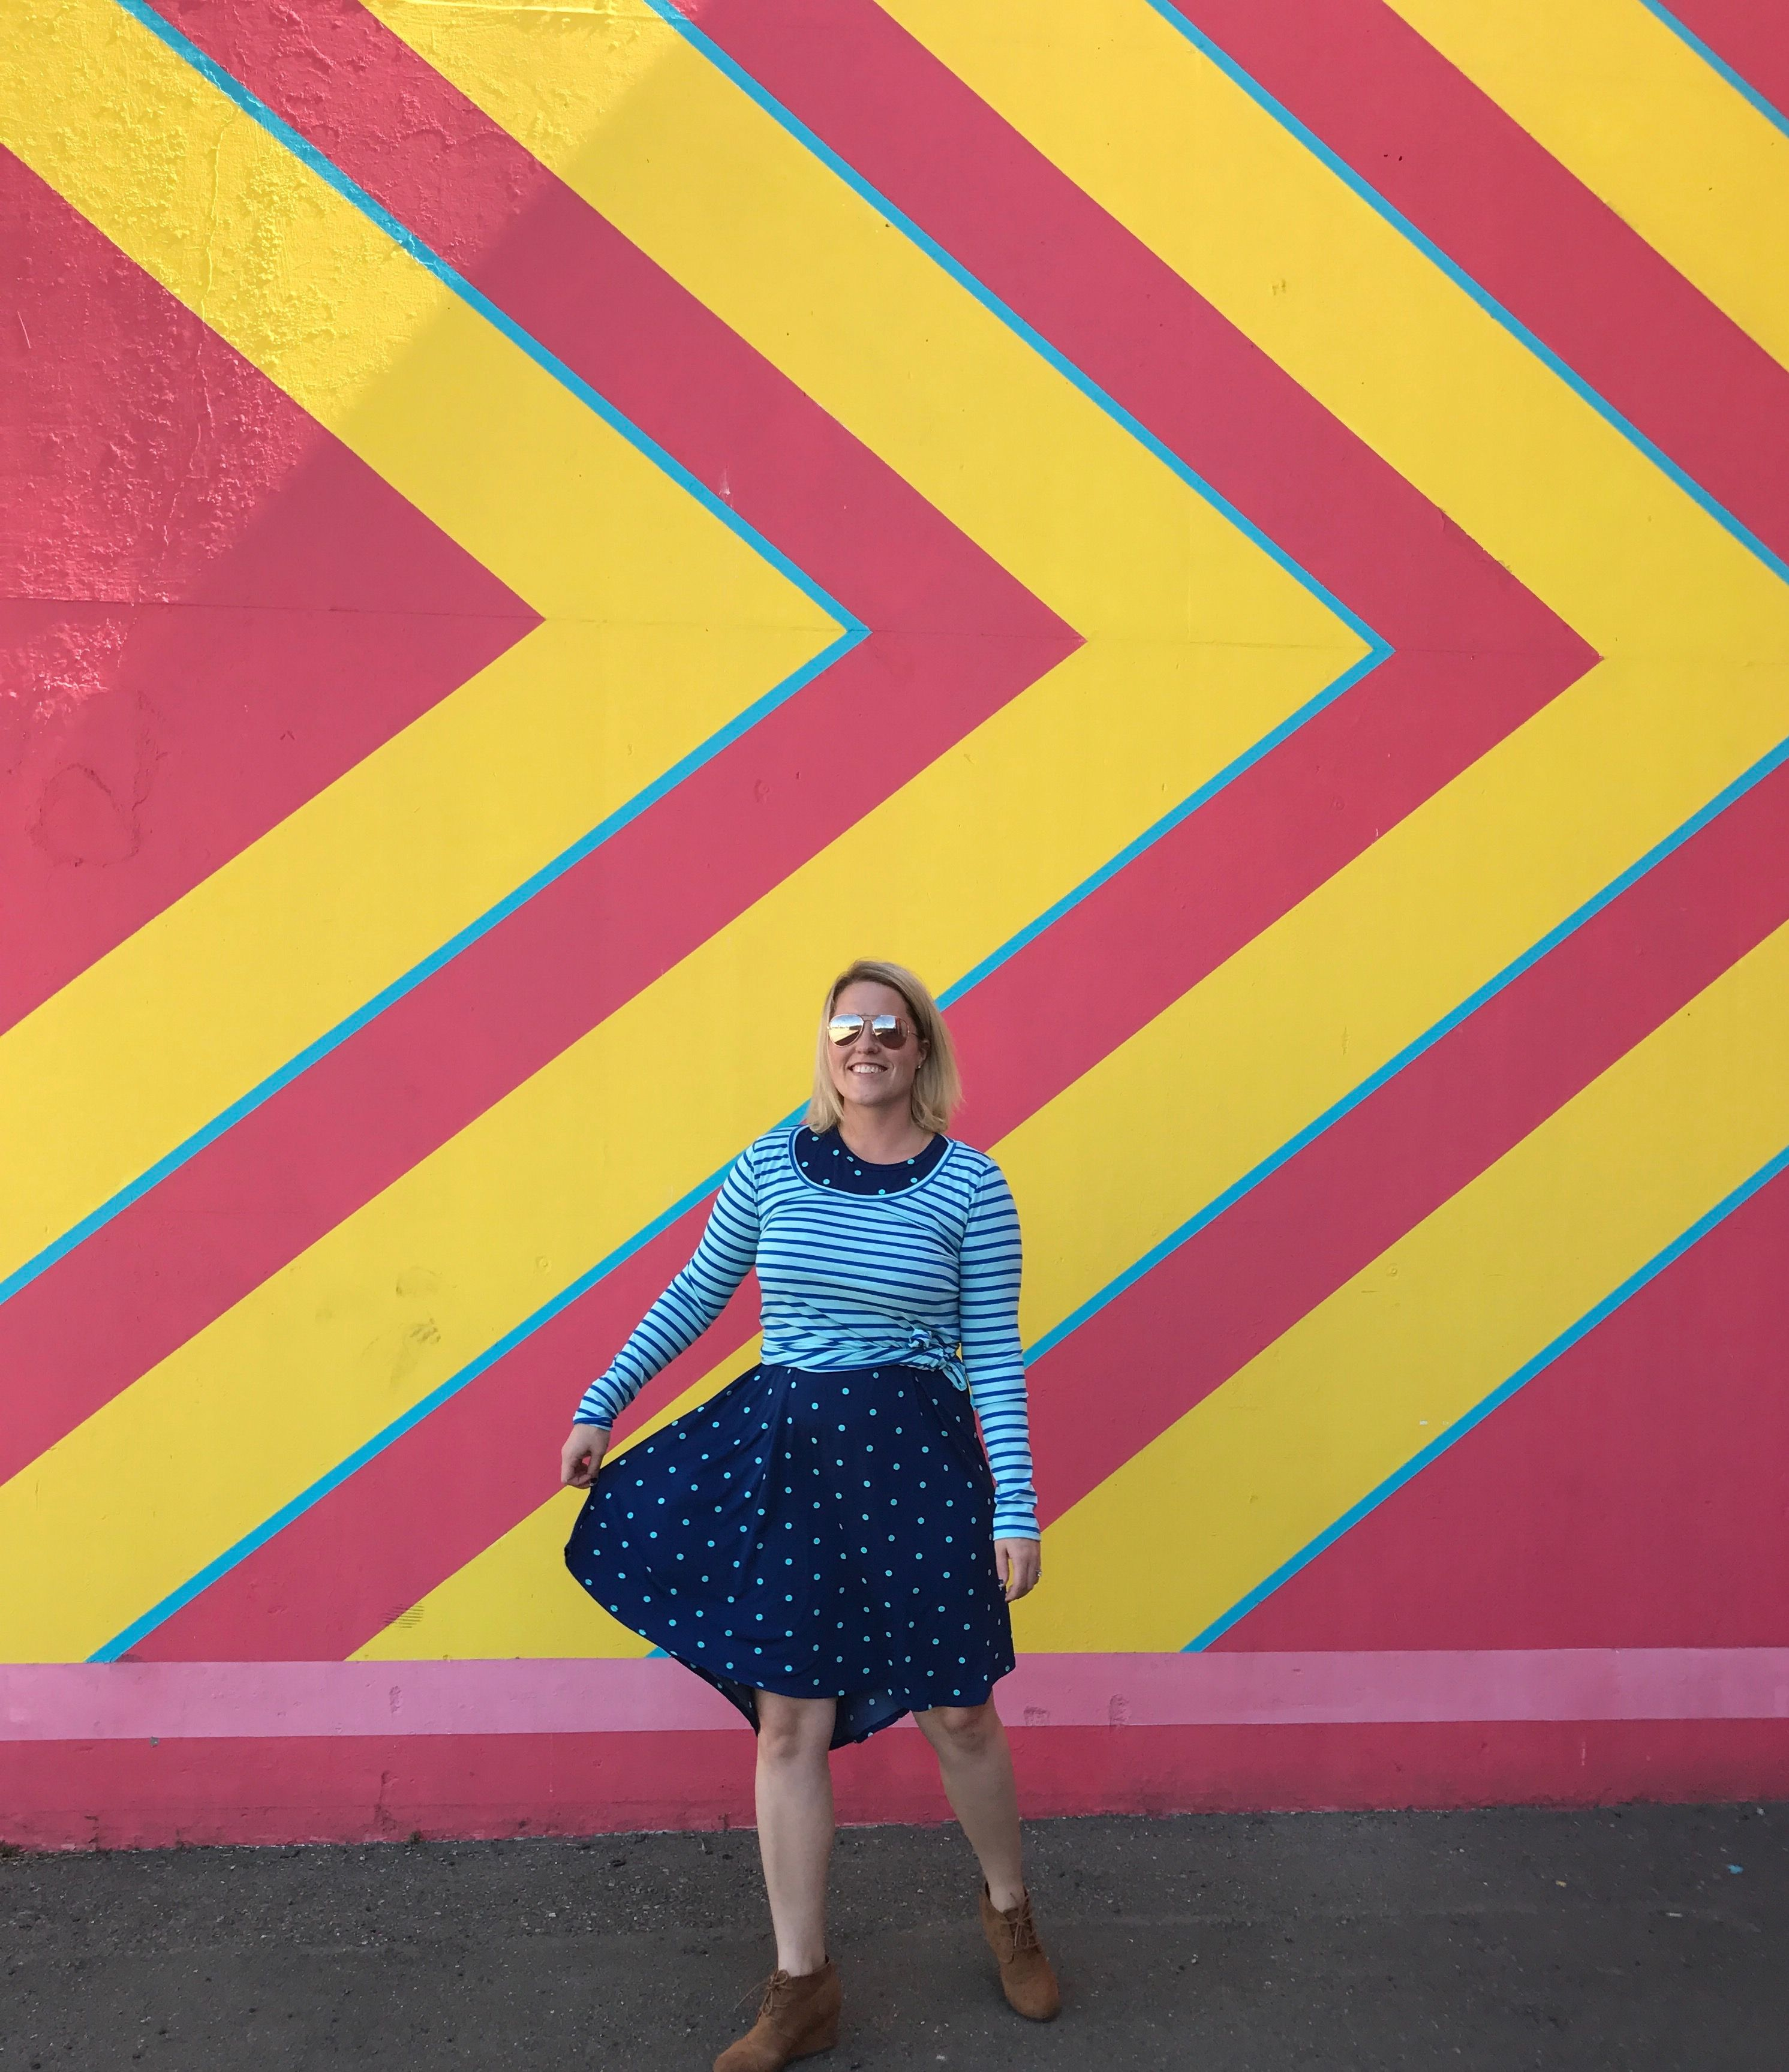 Look at this amazing LulaRoe outfit by @lularoesamanthastringert! To purchase, visit their Facebook group at https://www.facebook.com/groups/lularoesamanthastringert